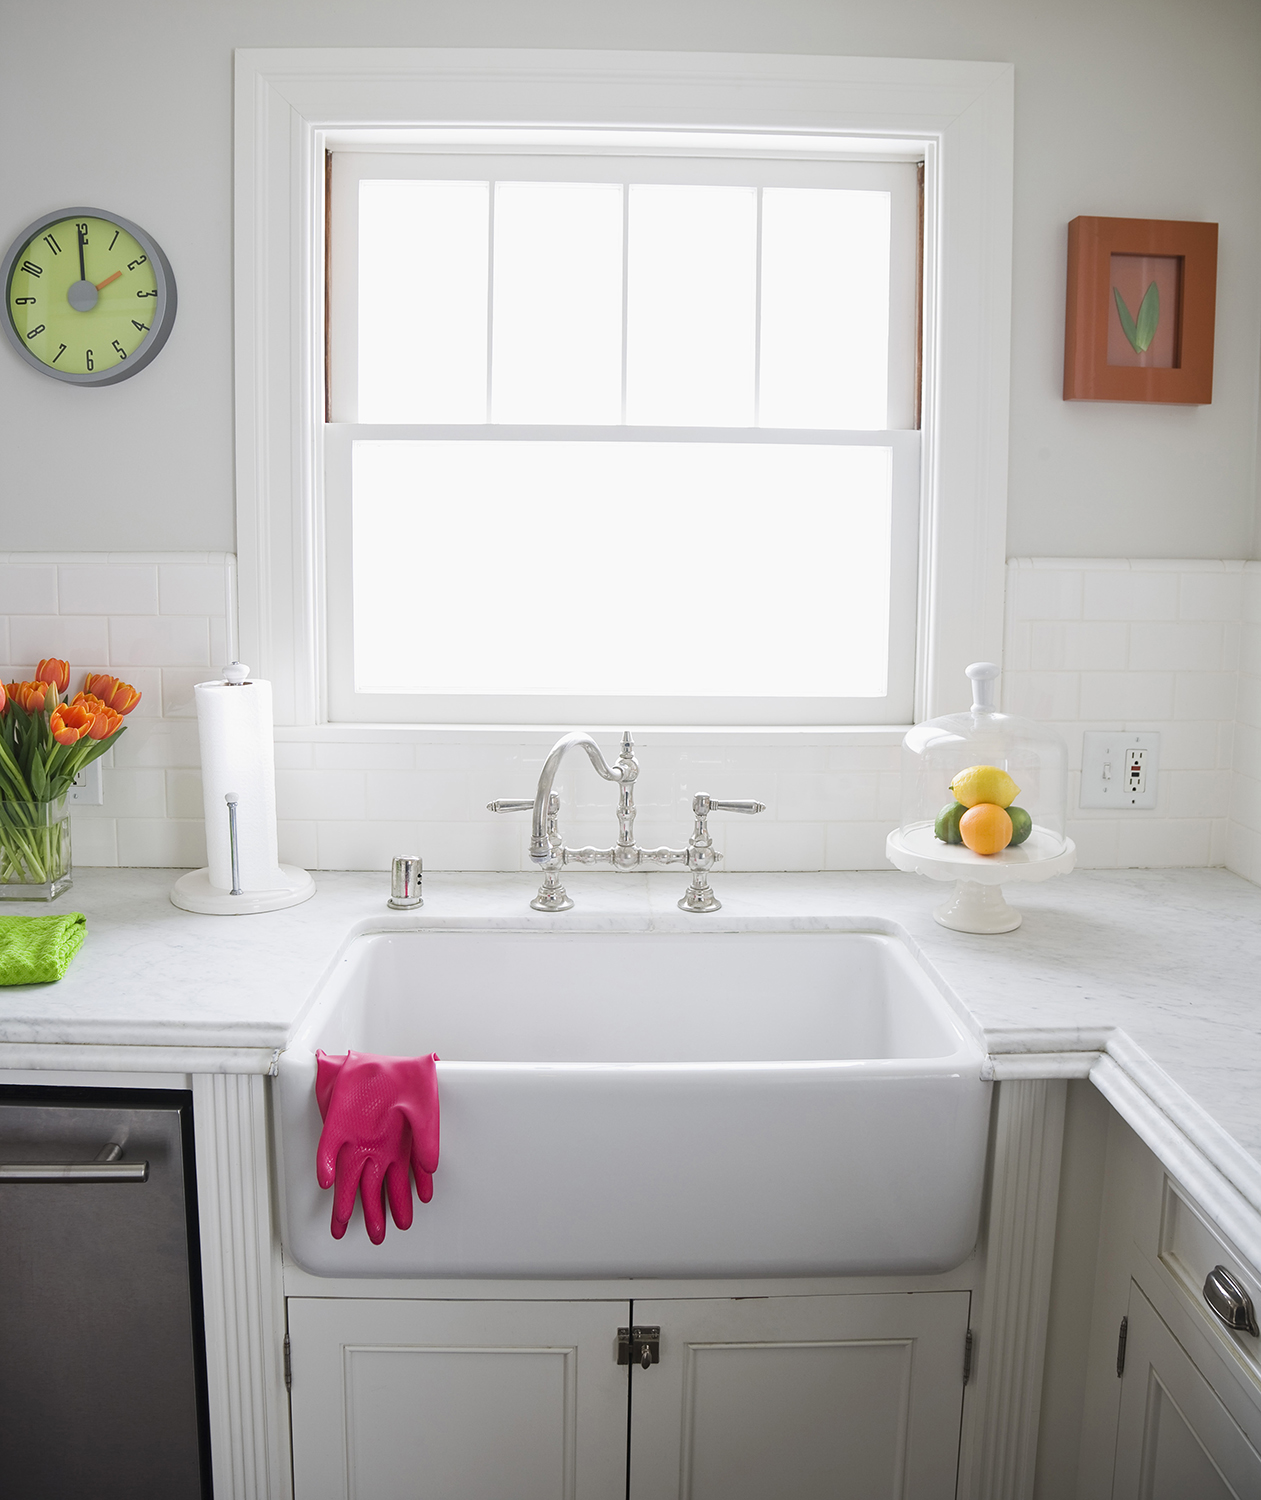 White kitchen with color accents